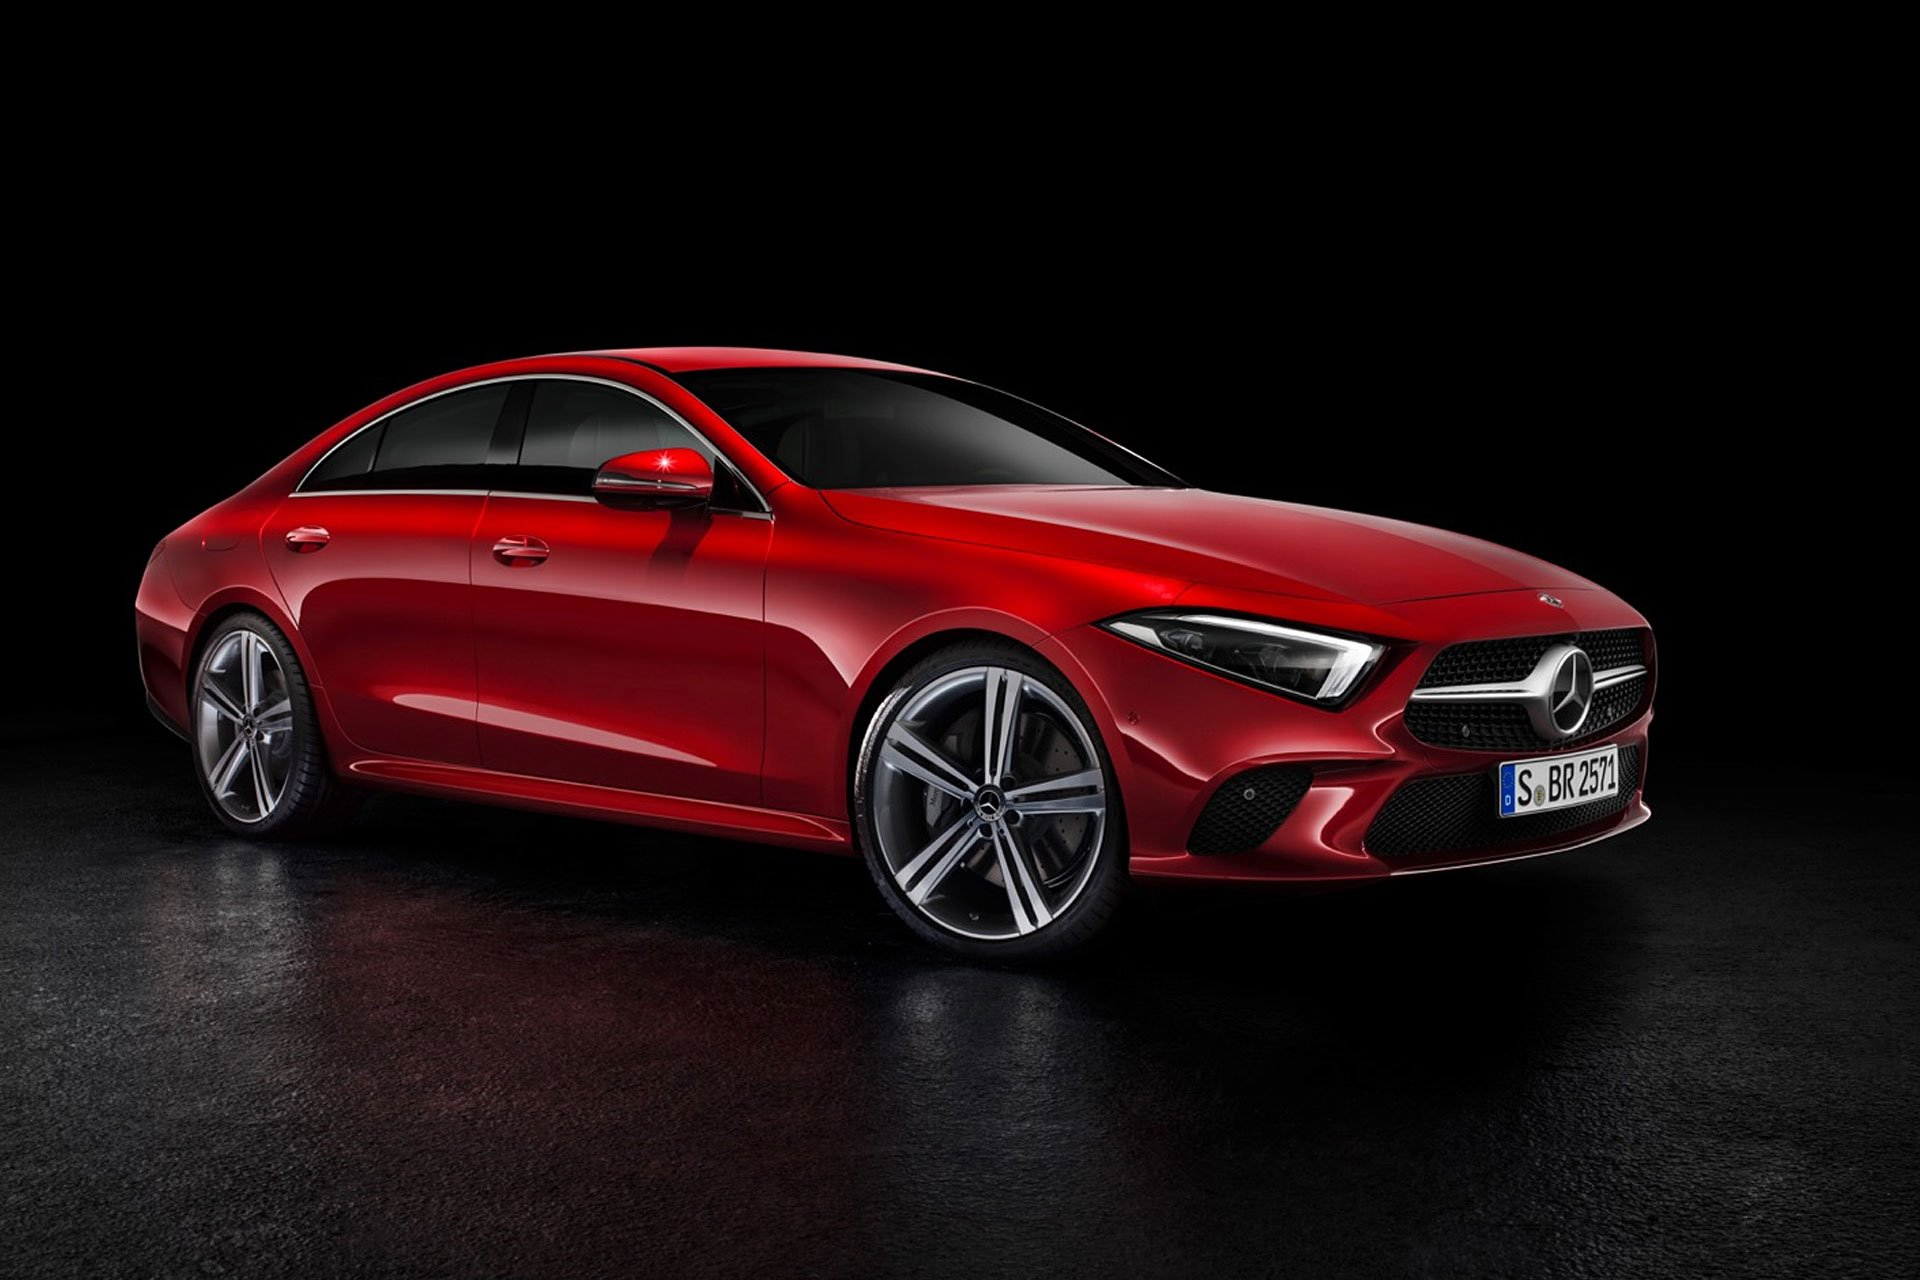 New 2019 Mercedes-Benz CLS AMG 53 S AMG CLS 53 S for sale $79,900 at M and V Leasing in Brooklyn NY 11223 1